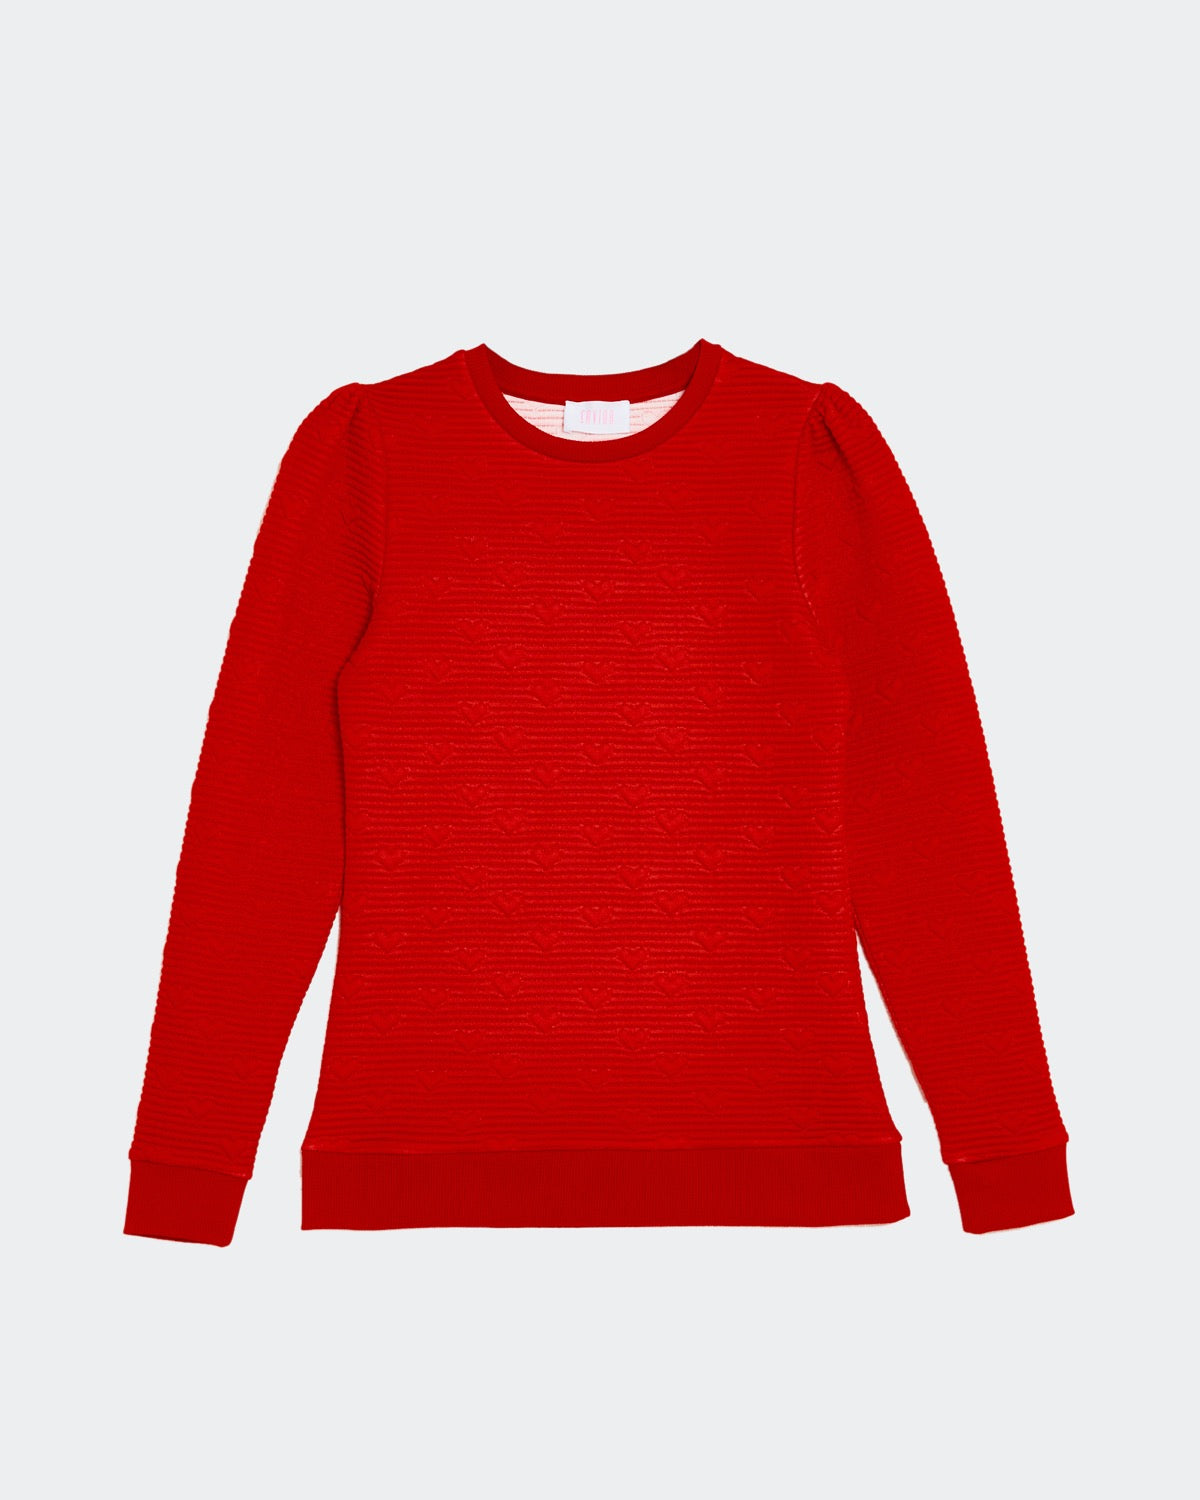 Juliet Heart Bubble Sweatshirt rojo